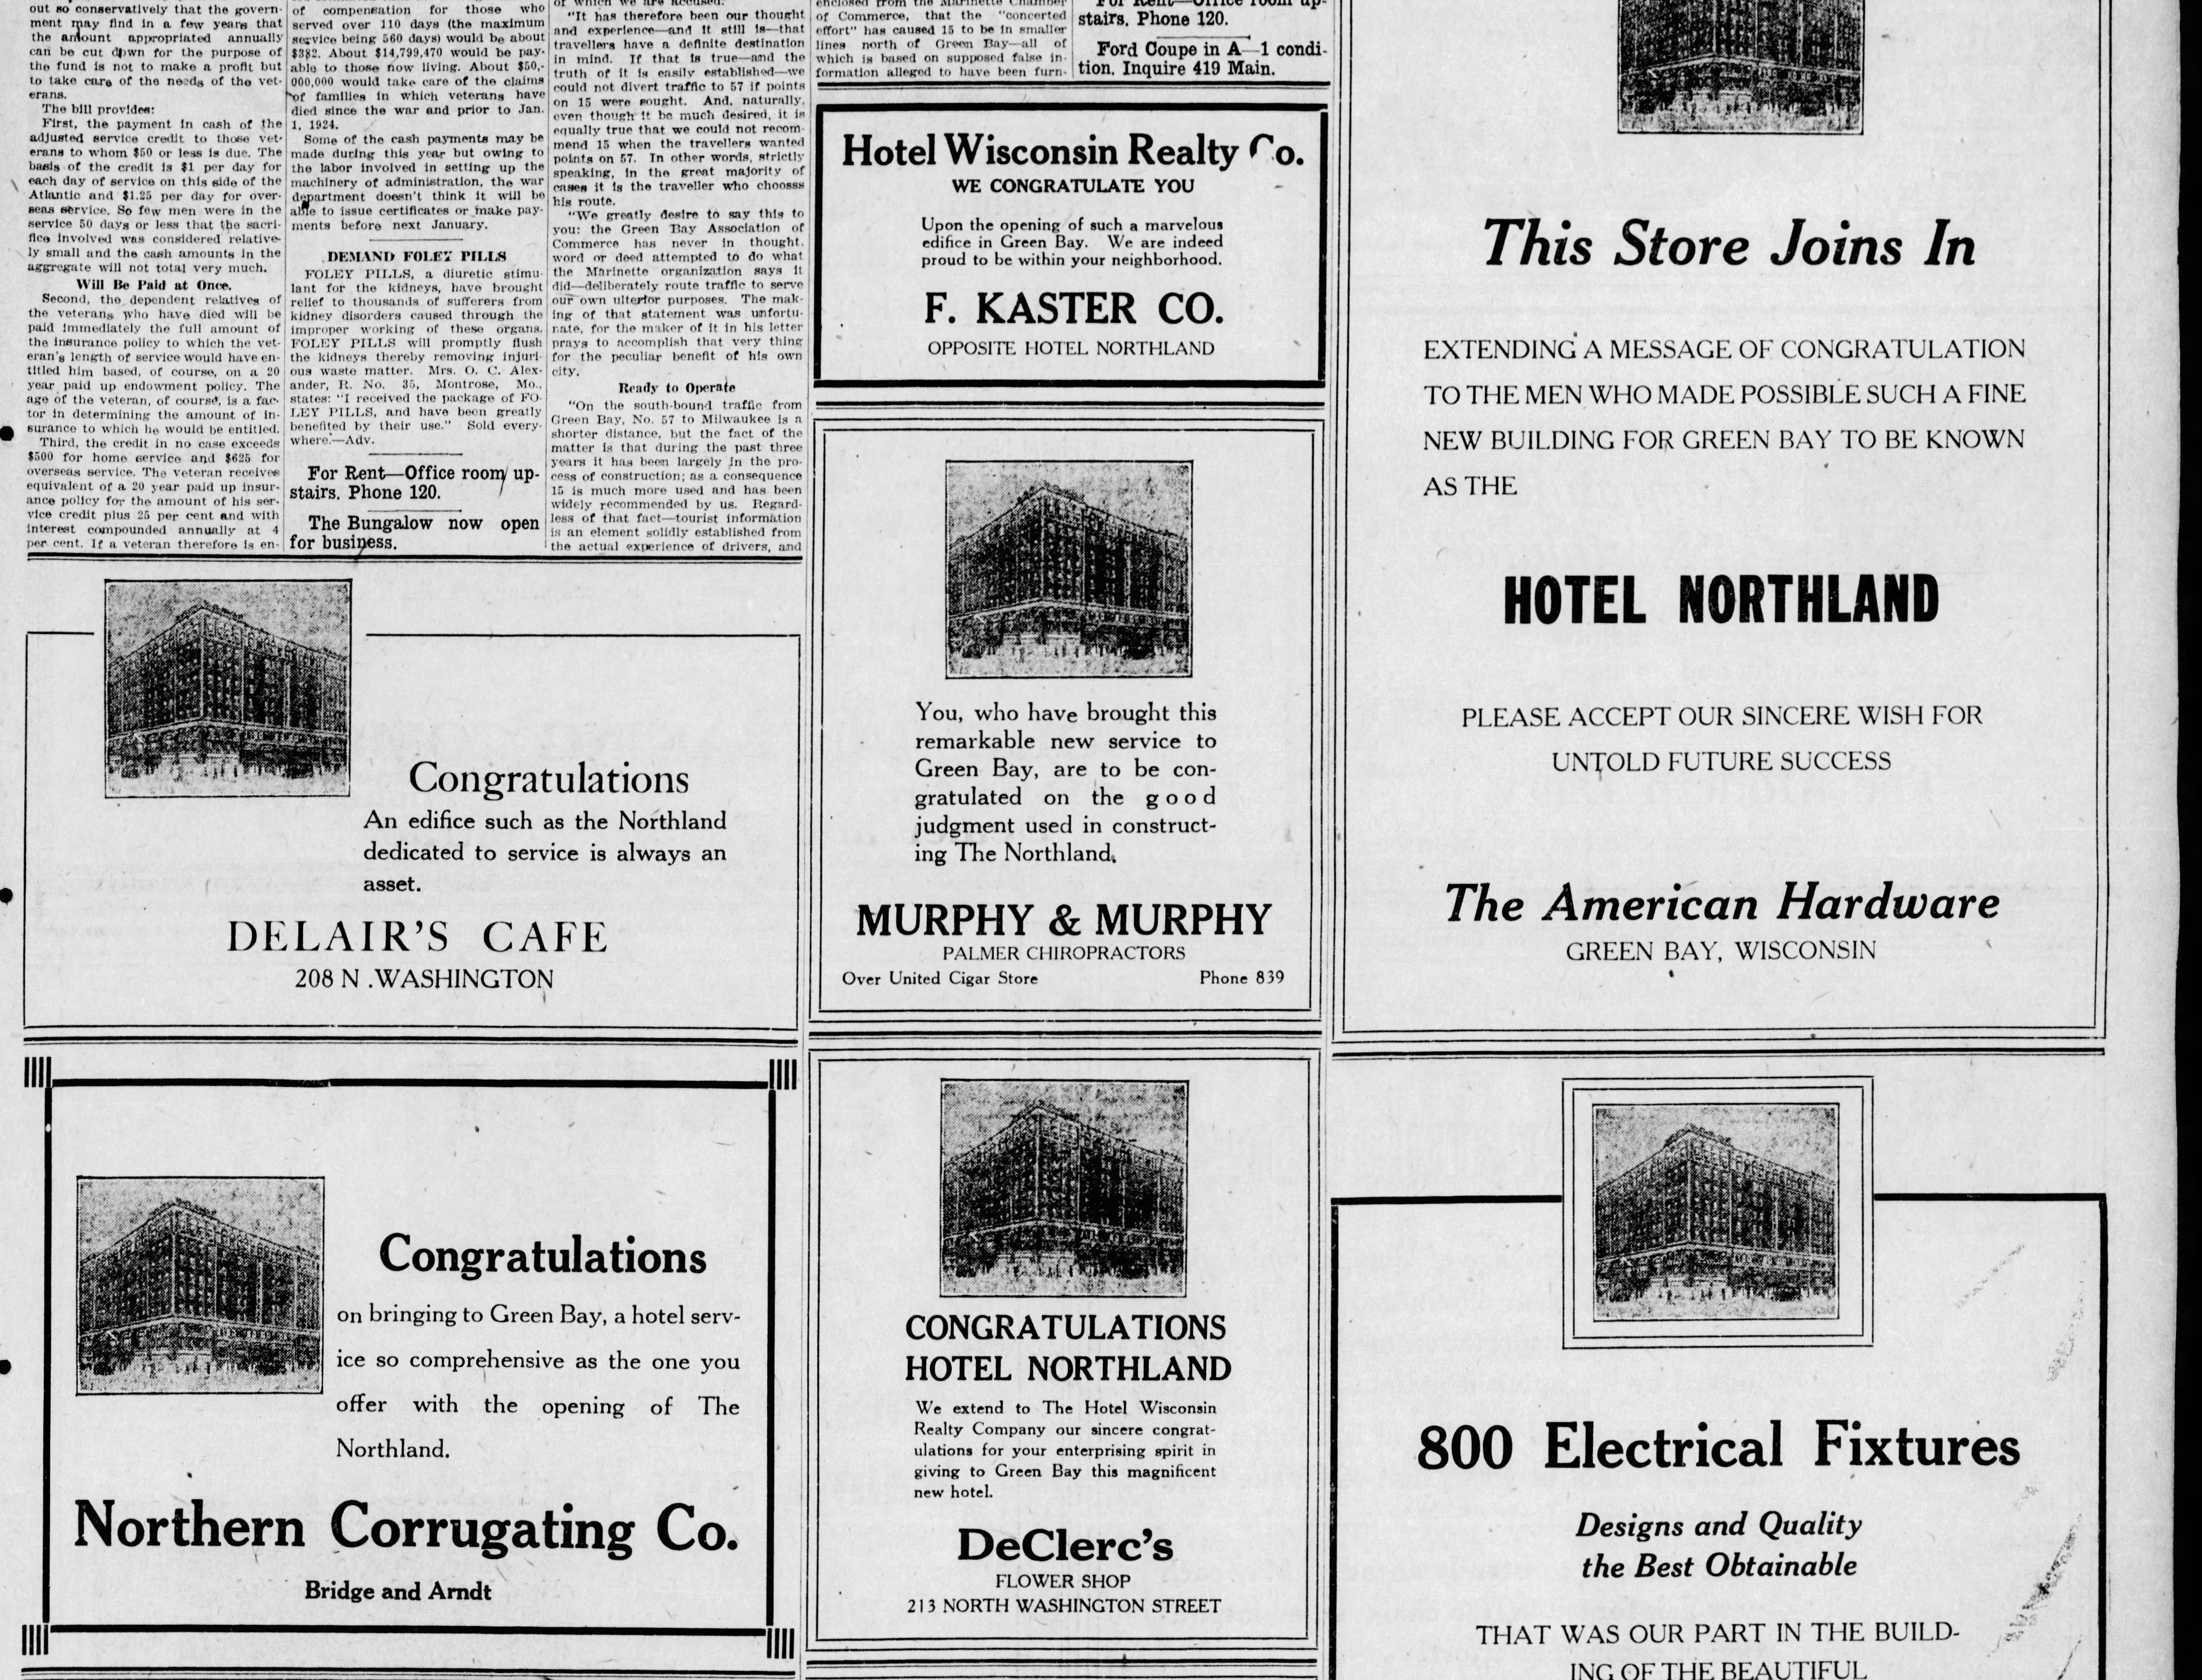 Adverstisements in a March 20, 1924 special section in the Green Bay Press Gazette announcing the opening of the Hotel Northland.